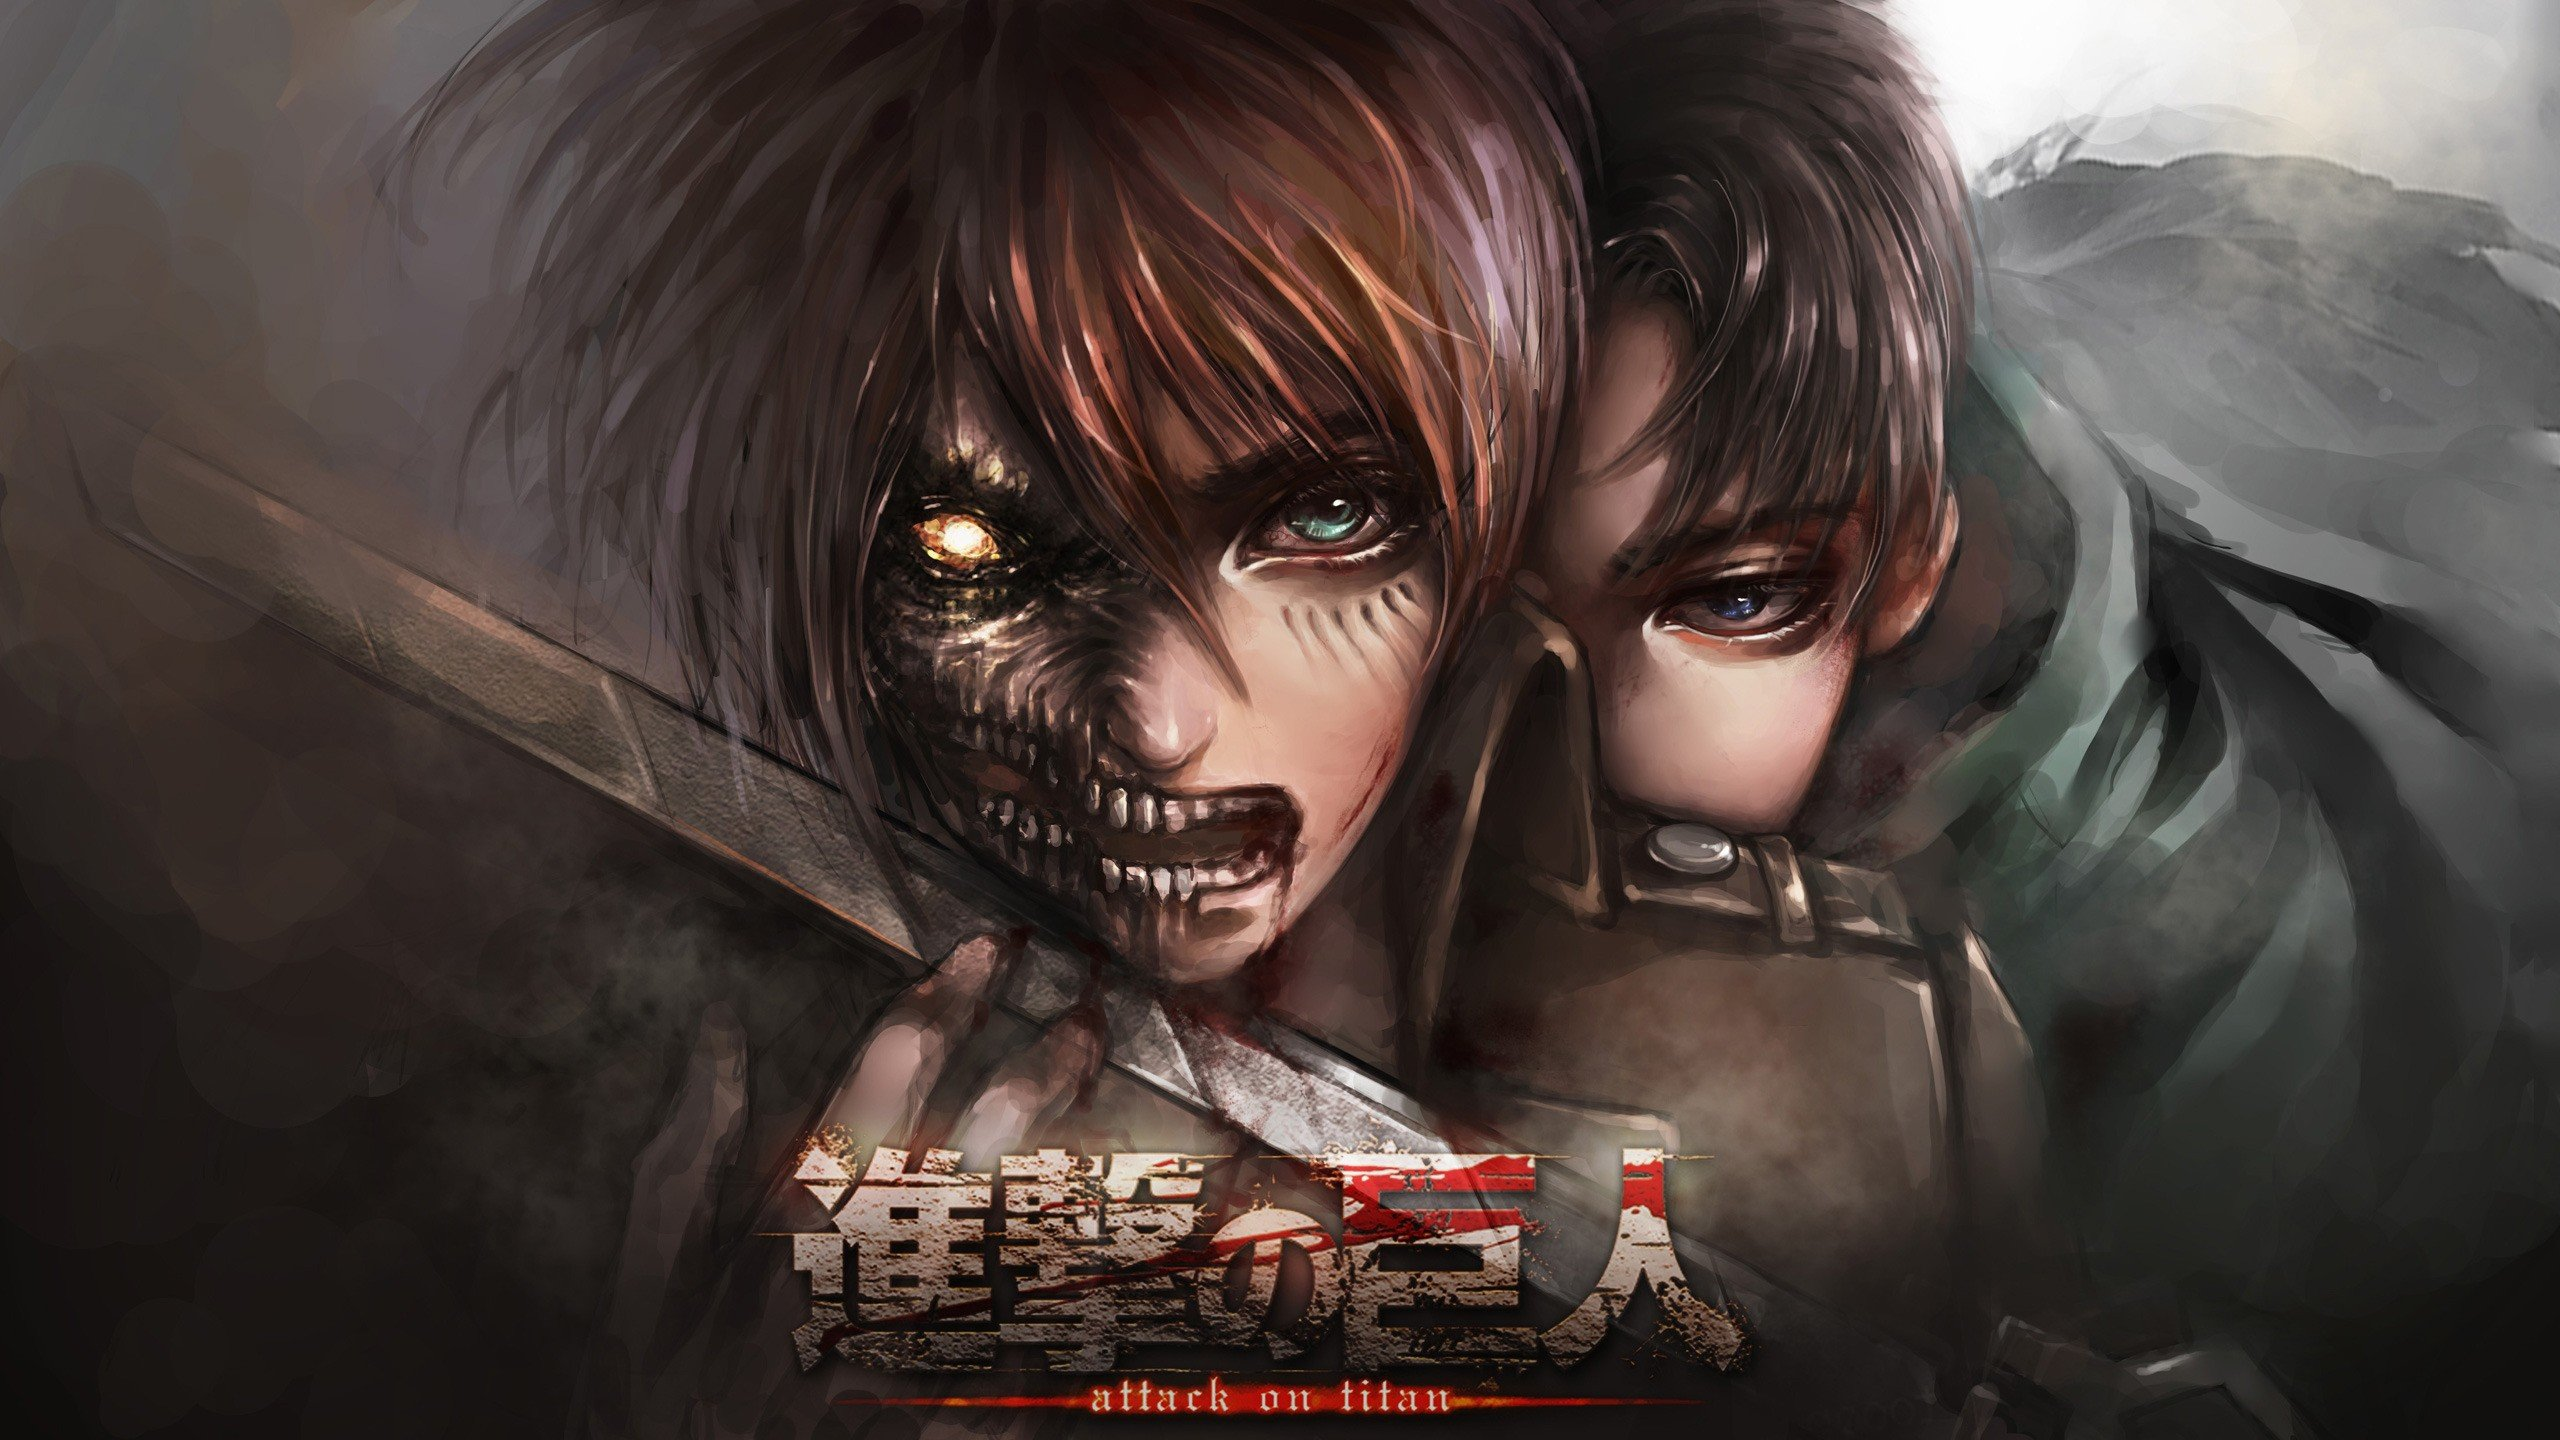 Awesome Attack On Titan Free Wallpaper Id Shingeki No Kyojin 2 Wallpaper Hd 2560x1440 Wallpaper Teahub Io